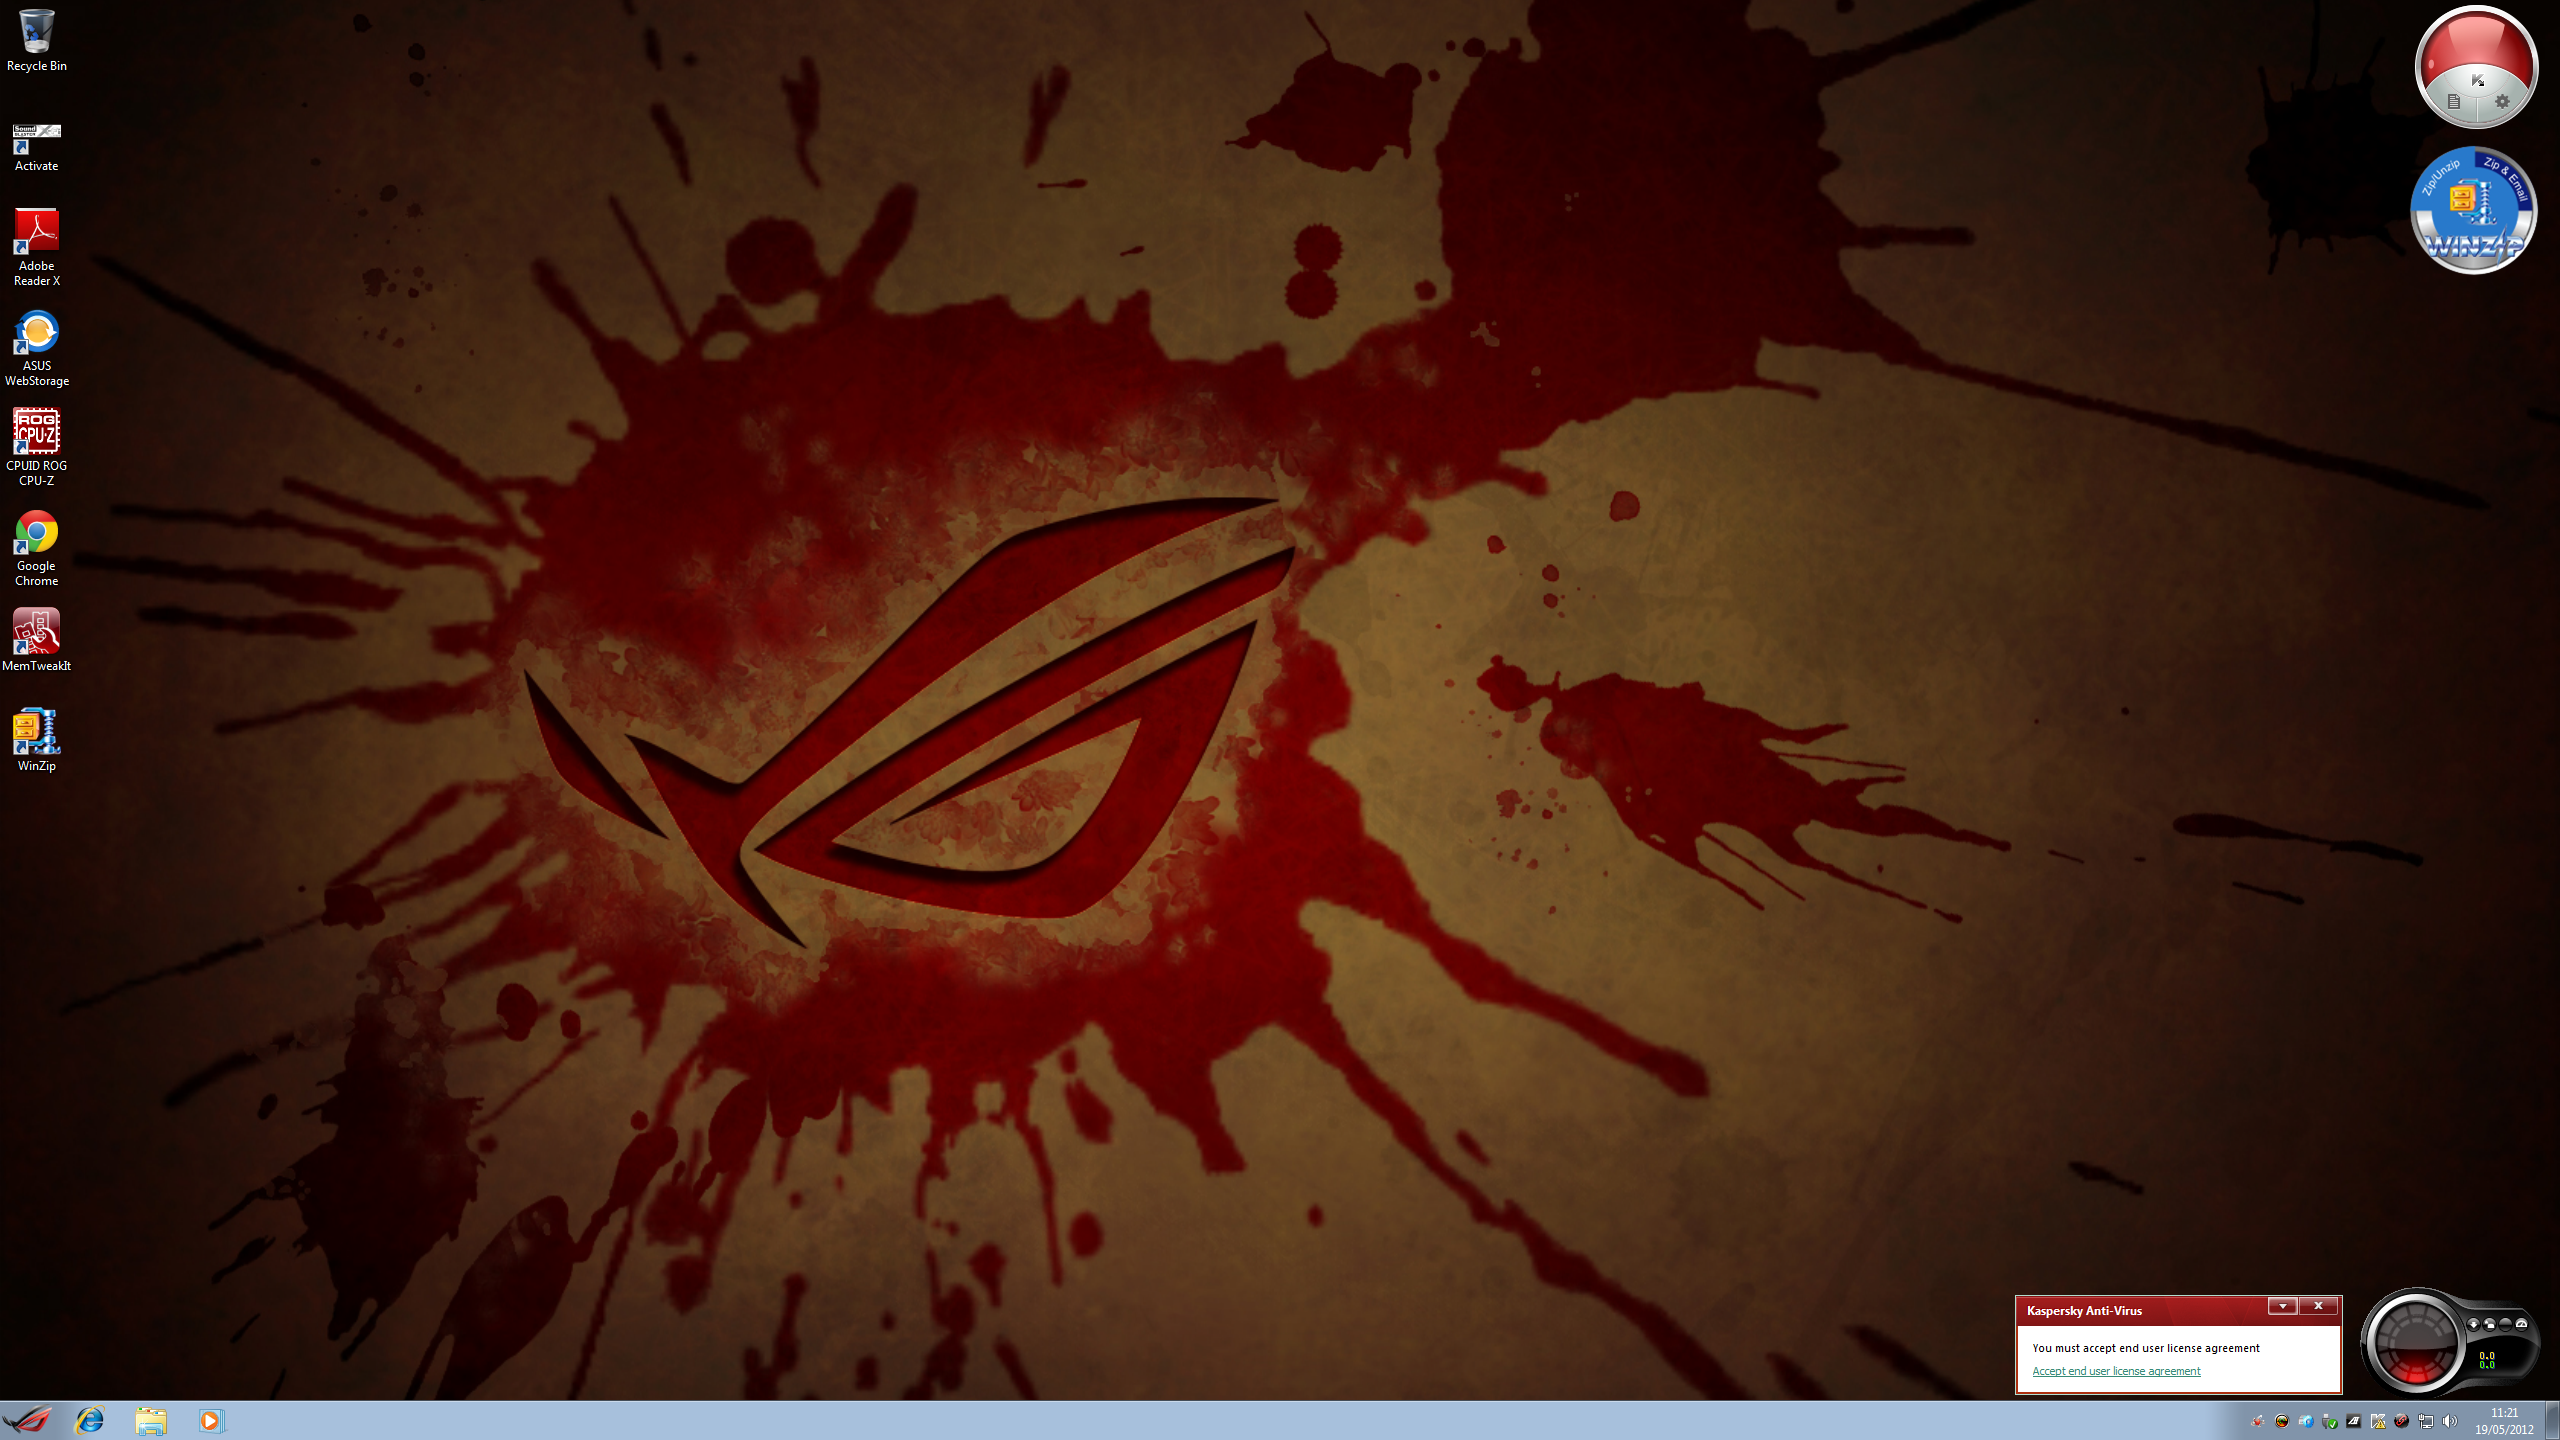 Motherboard Software for ROG - ASUS Republic of Gamers and